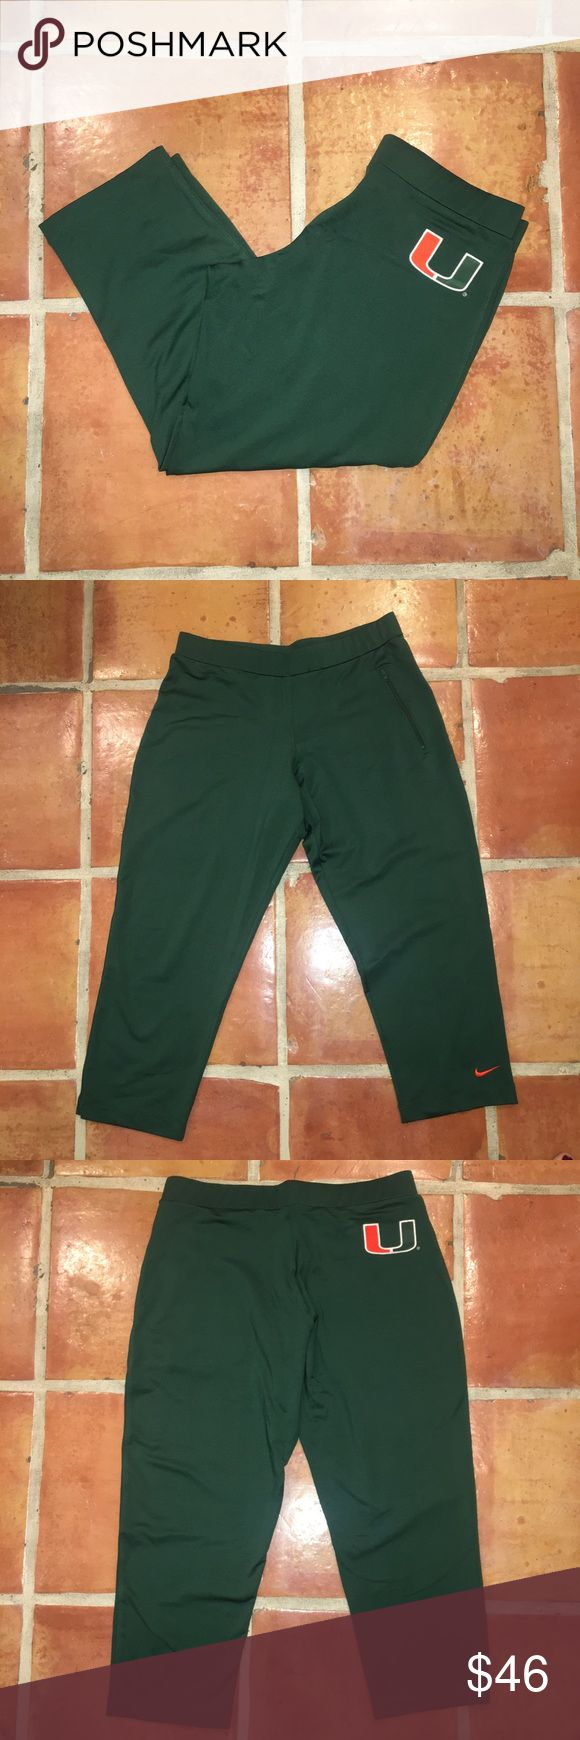 """EUC Nike University of Miami Capri Pants 🙌🏼 Worn once! Has a zipper on the front right side of the pants. Has a U symbol on the back right side. They have an elastic waistband. They are made of 88% polyester and 12% spandex. Size medium (8-10) and they are women's. The width across waist is 15.5"""" with a 23.5"""" inseam. The leg opening is 7"""" across. Feel free to bundle and make an offer. Perfect for any Hurricane fan!! 🙌🏼 Nike Pants Track Pants & Joggers"""